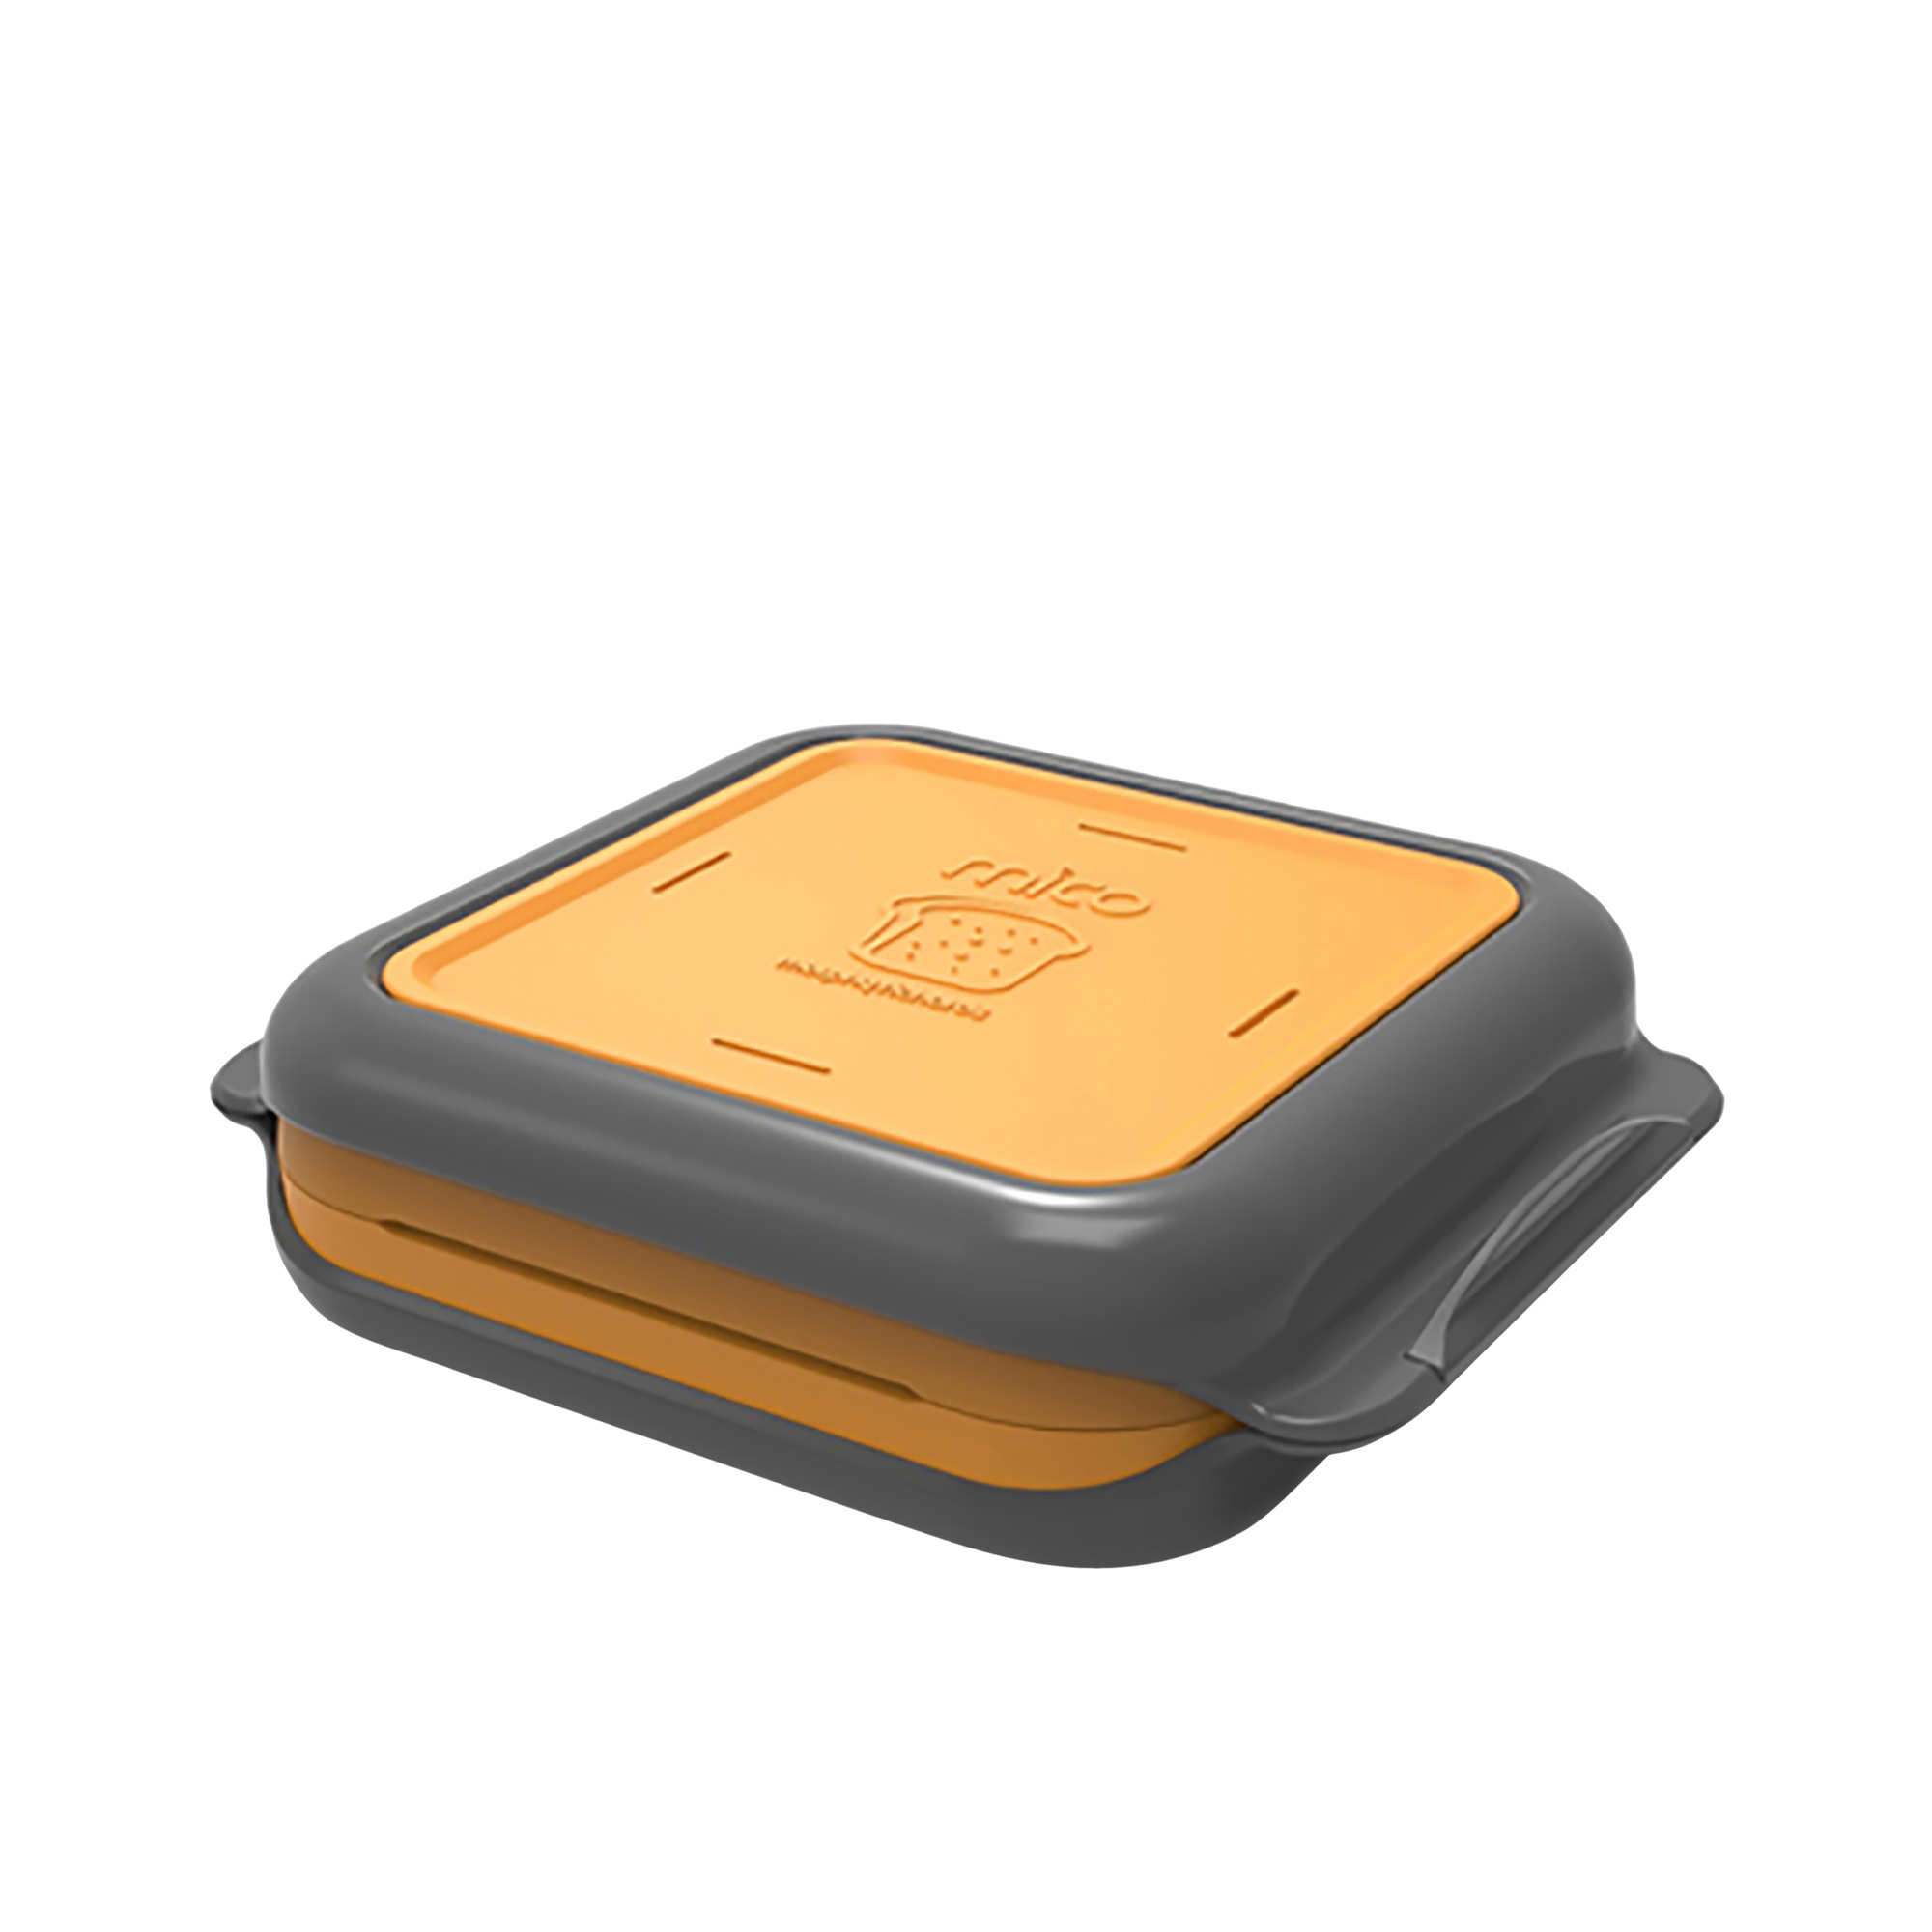 Morphy Richards MICO Toastie Sandwich Maker Yellow